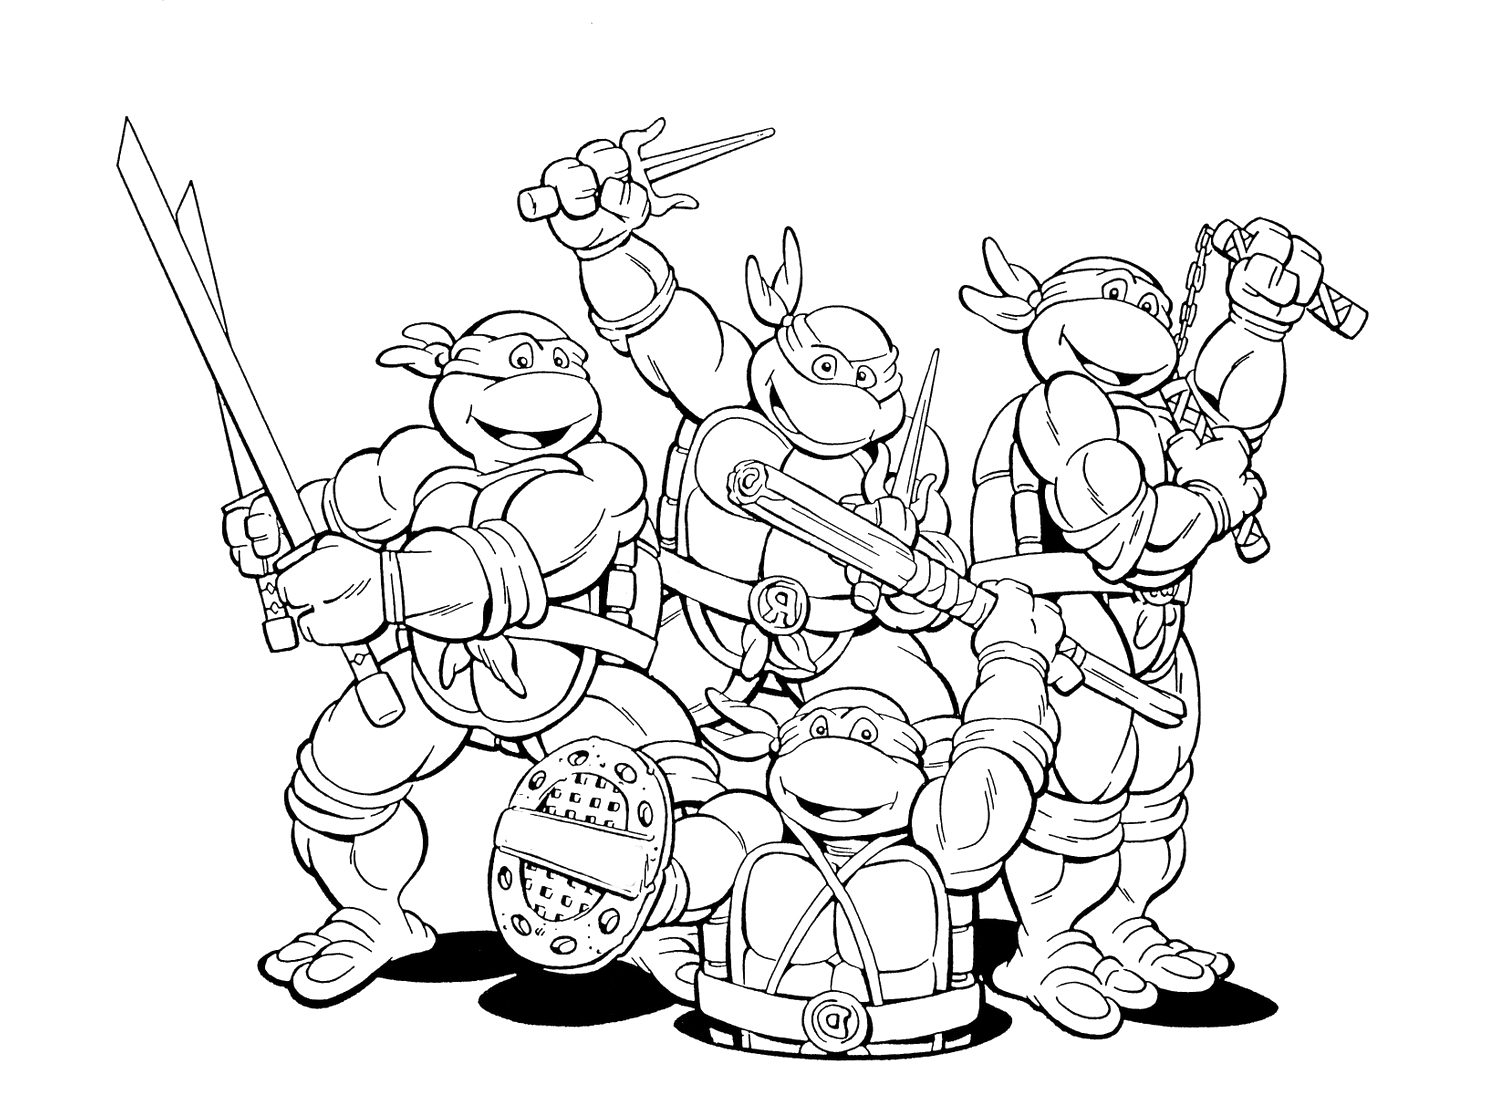 Best Ninja Turtles Coloring Pages For Boys Image